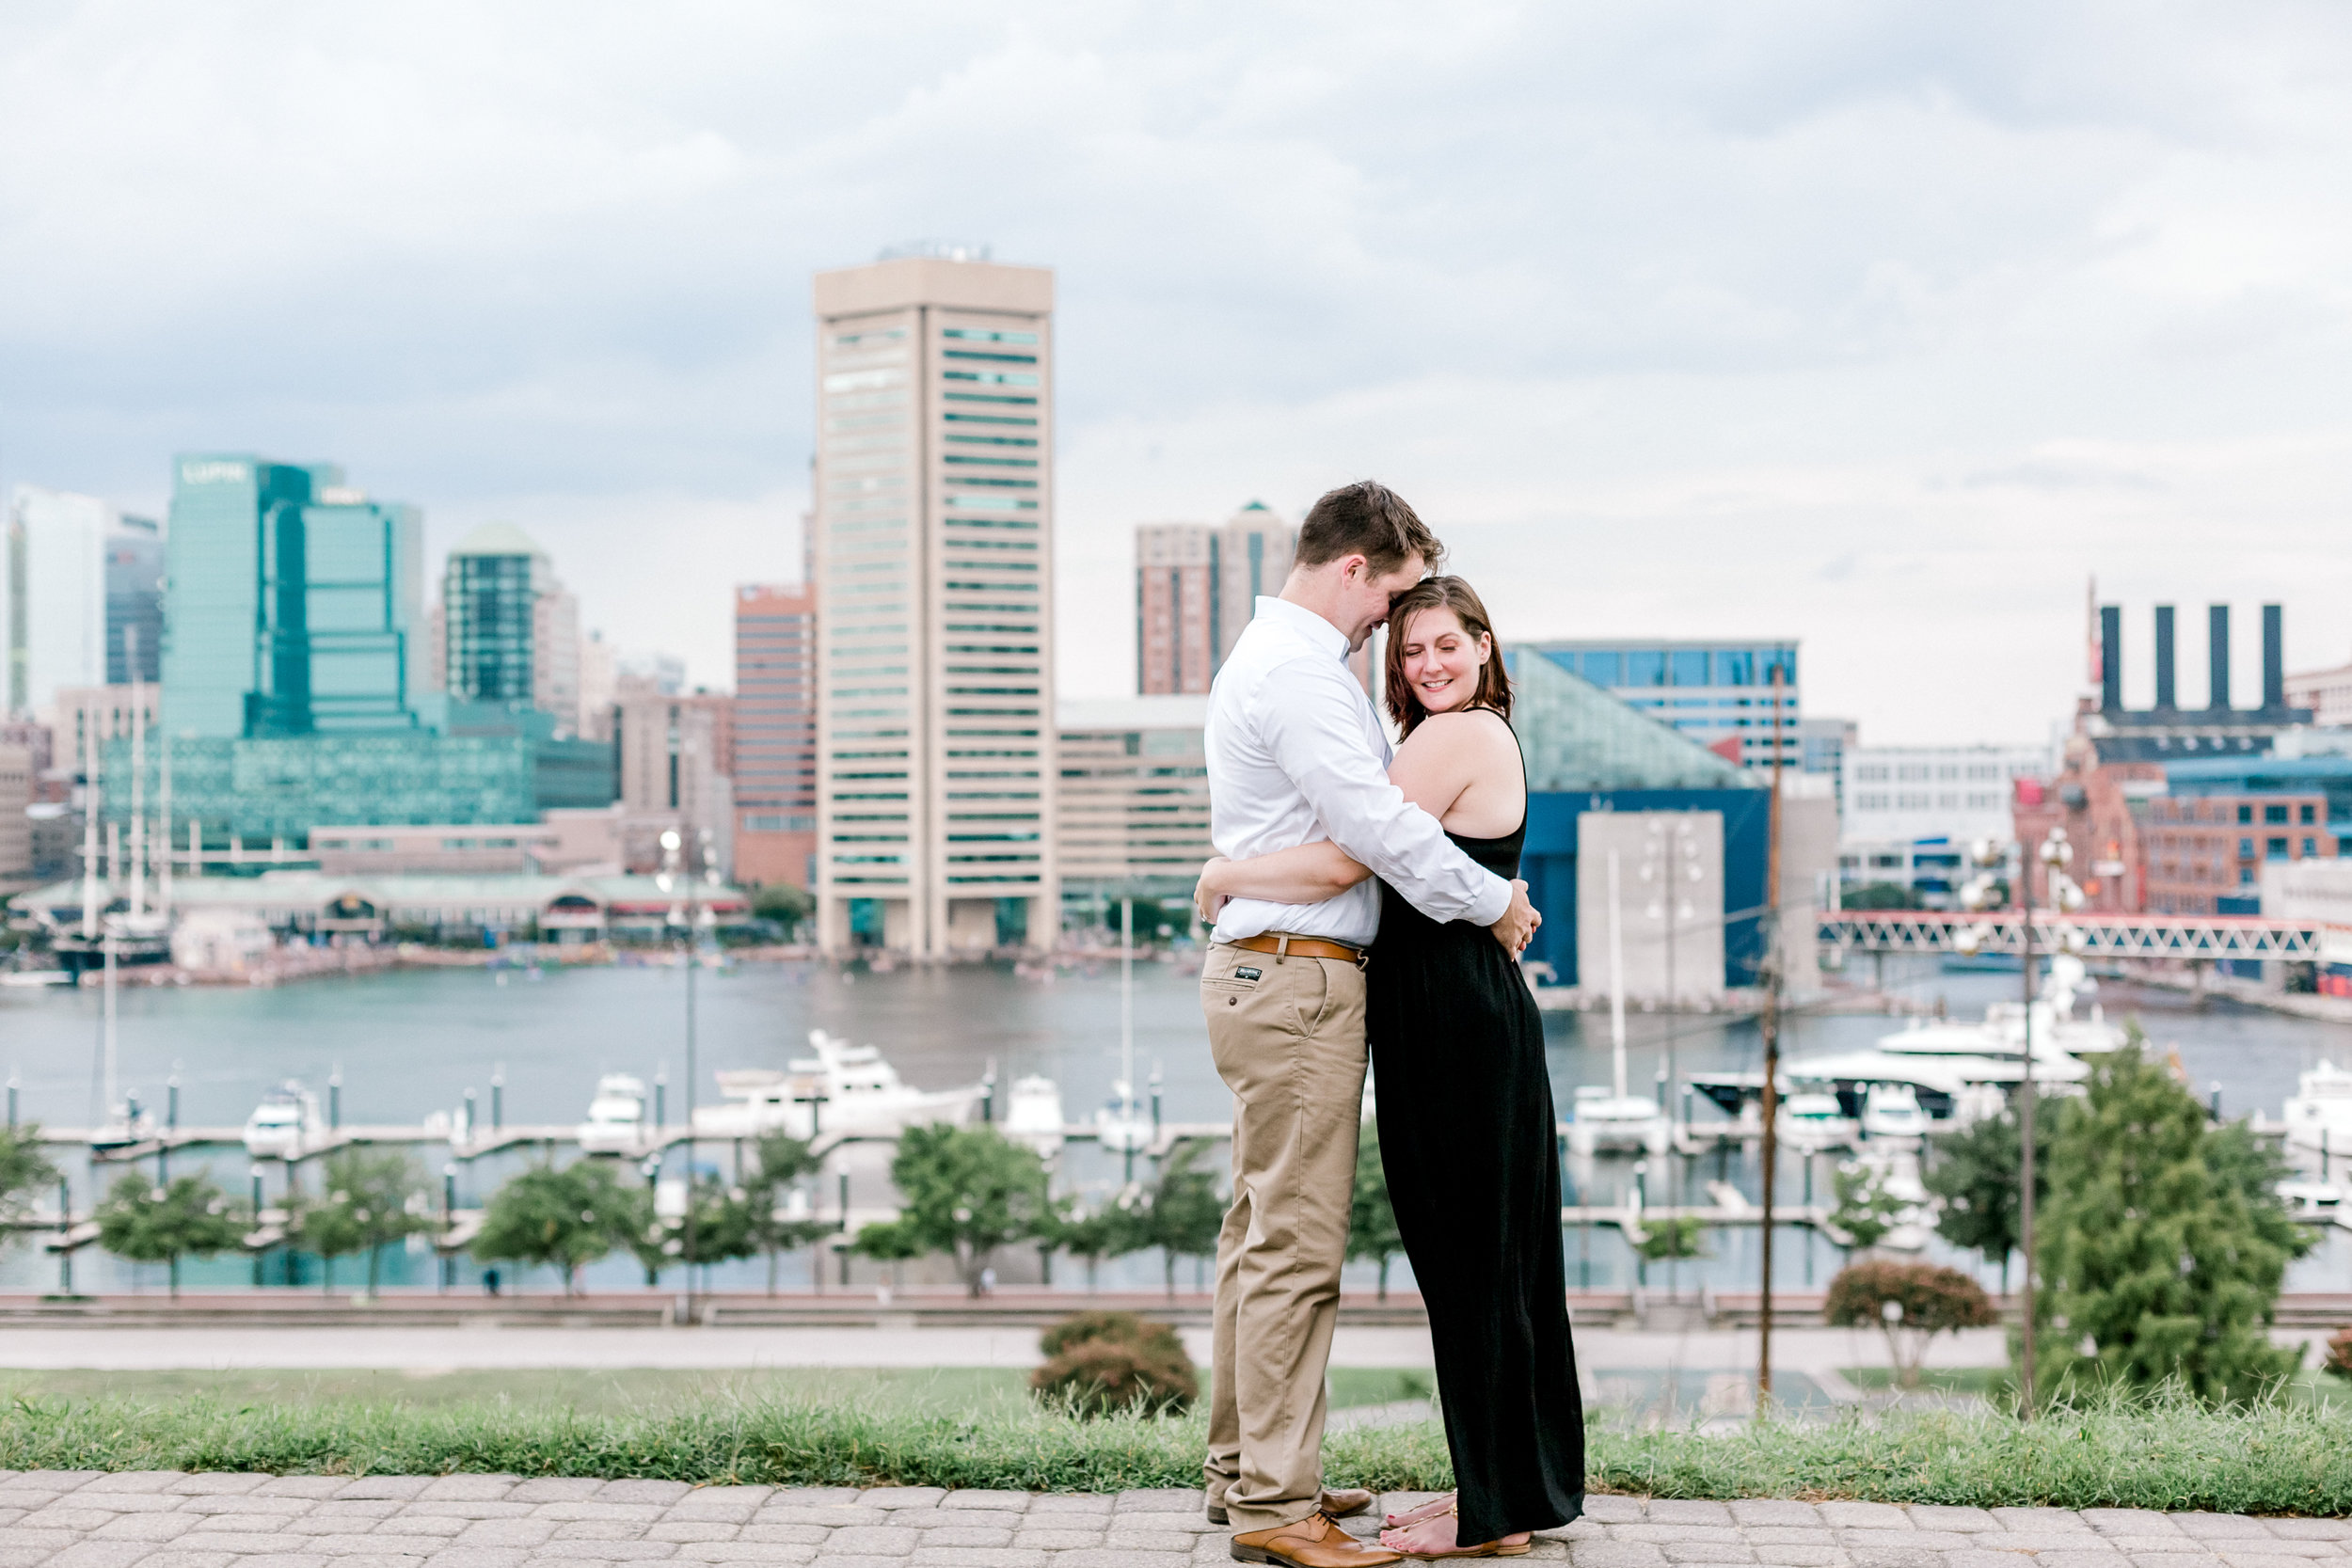 Baltimore Federal Hill Park Stormy Engagement Session Lytle Photo Co (25 of 92).jpg